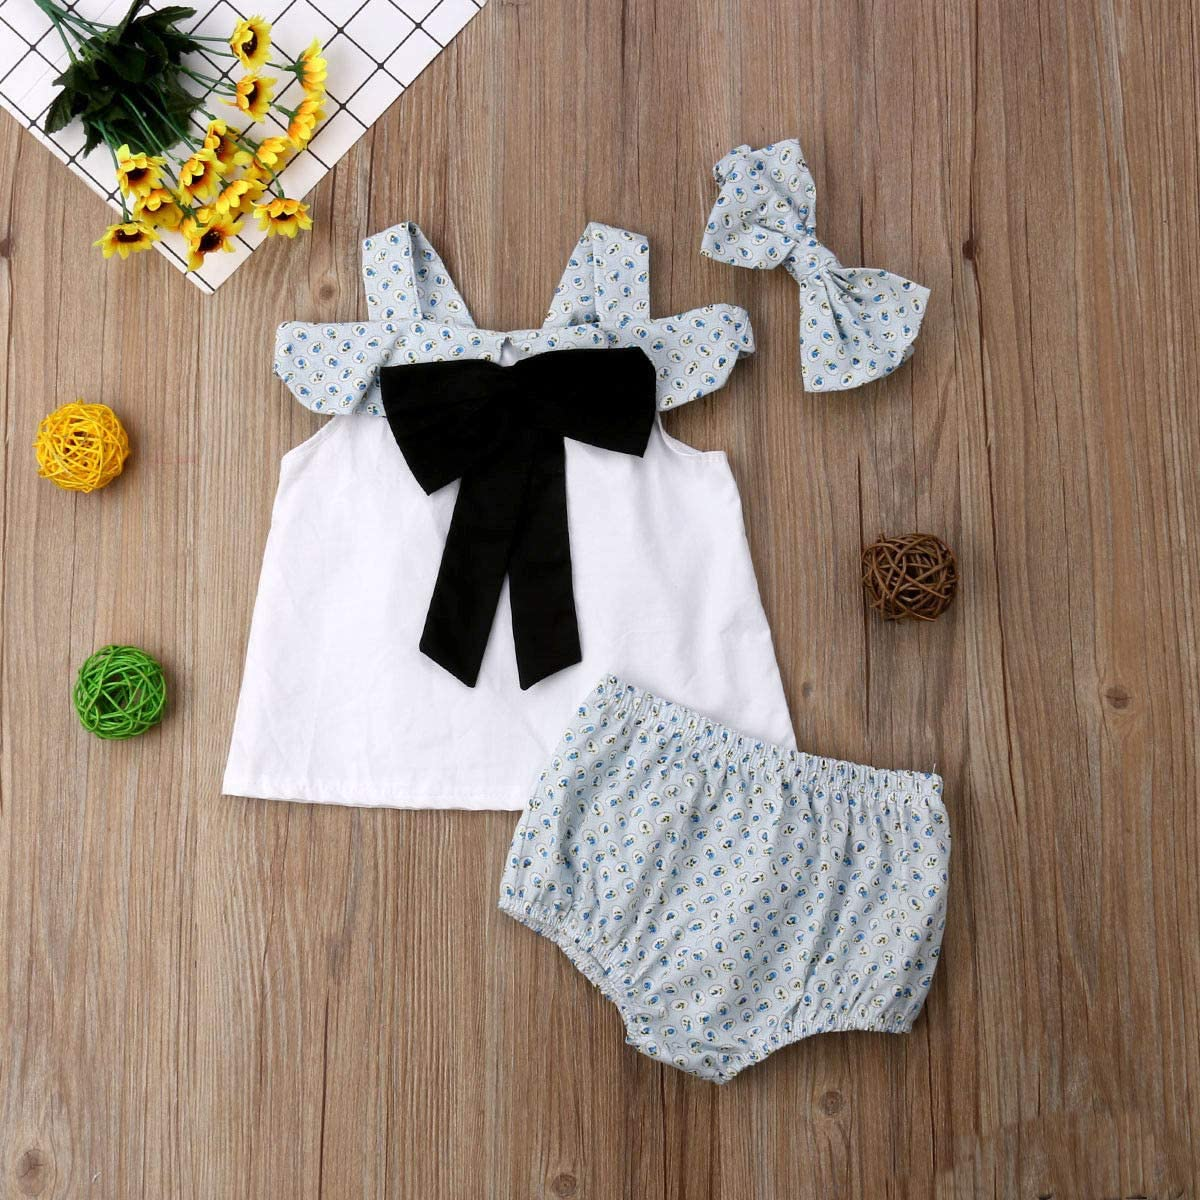 Infant Toddler Baby Girls Off Shoulder Bowknot Top with Bloomer Short and Headband 3pcs Outfits